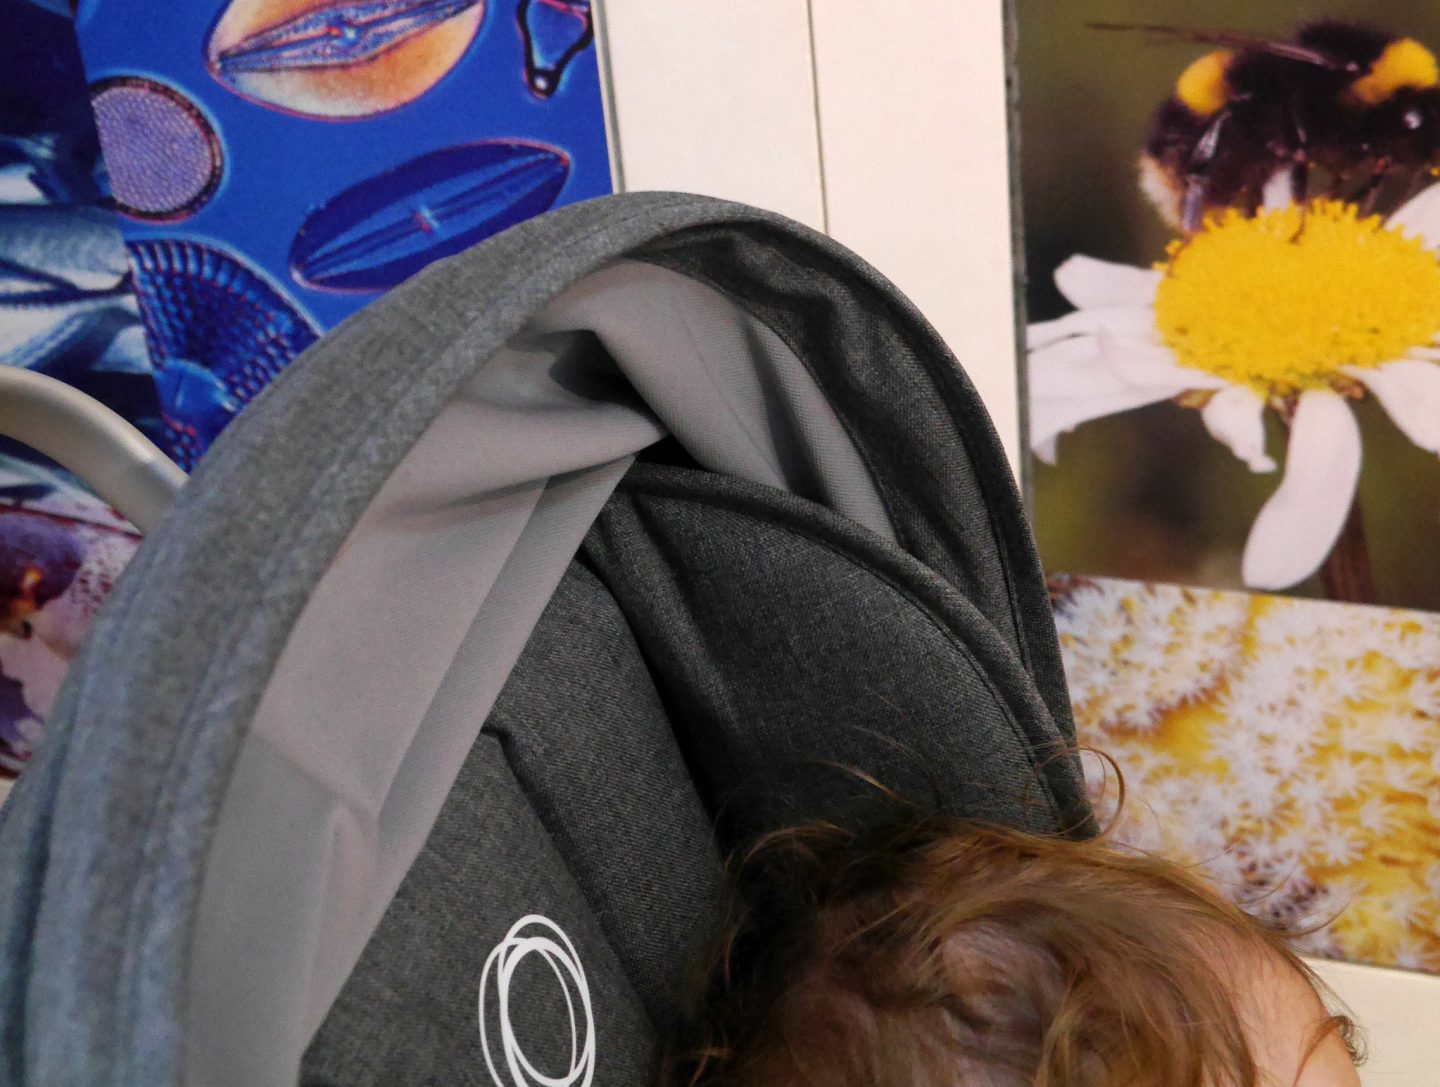 New Bugaboo Bee five review- brand new Bugaboo pram and why it's so good for use in cities